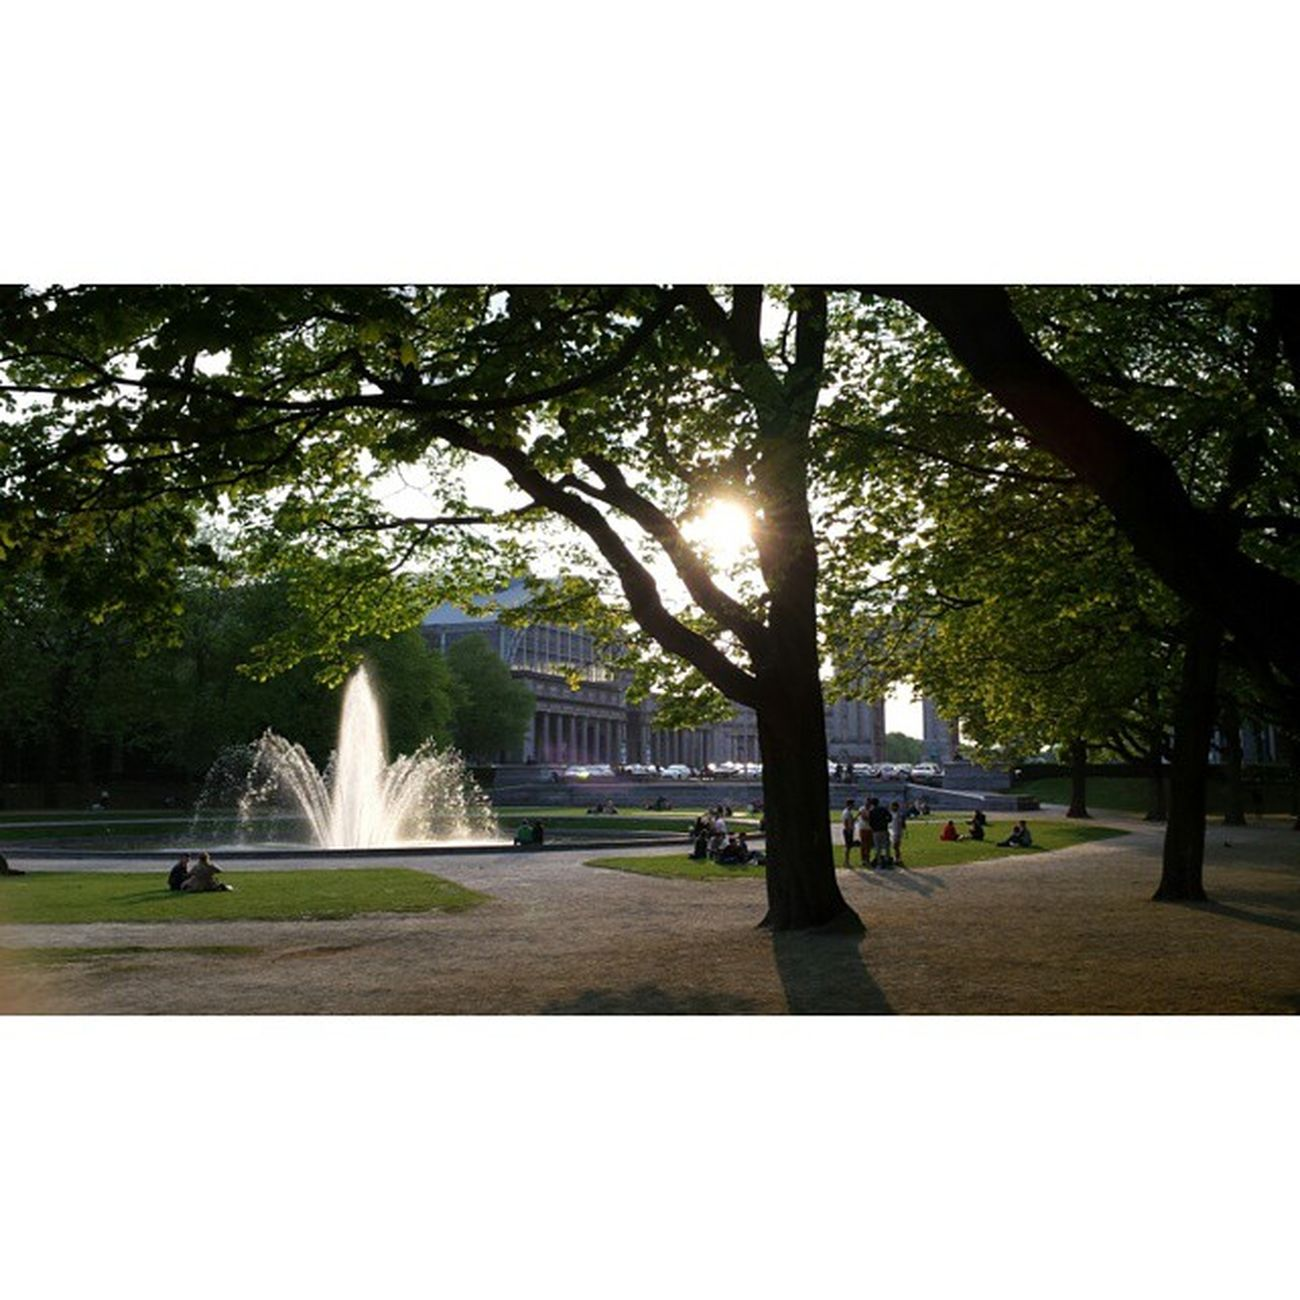 Parc du Cinquantenaire • Jubelpark • Parque de Cincuentenario 🌞 Picbyme Brussels Bruselas Bruxelles Belgium Bélgica Prettynature Jubelpark Parcdecinquantenaire Lovebrussels Capital Europe Fountain Green Nature Schuman Luxemburg